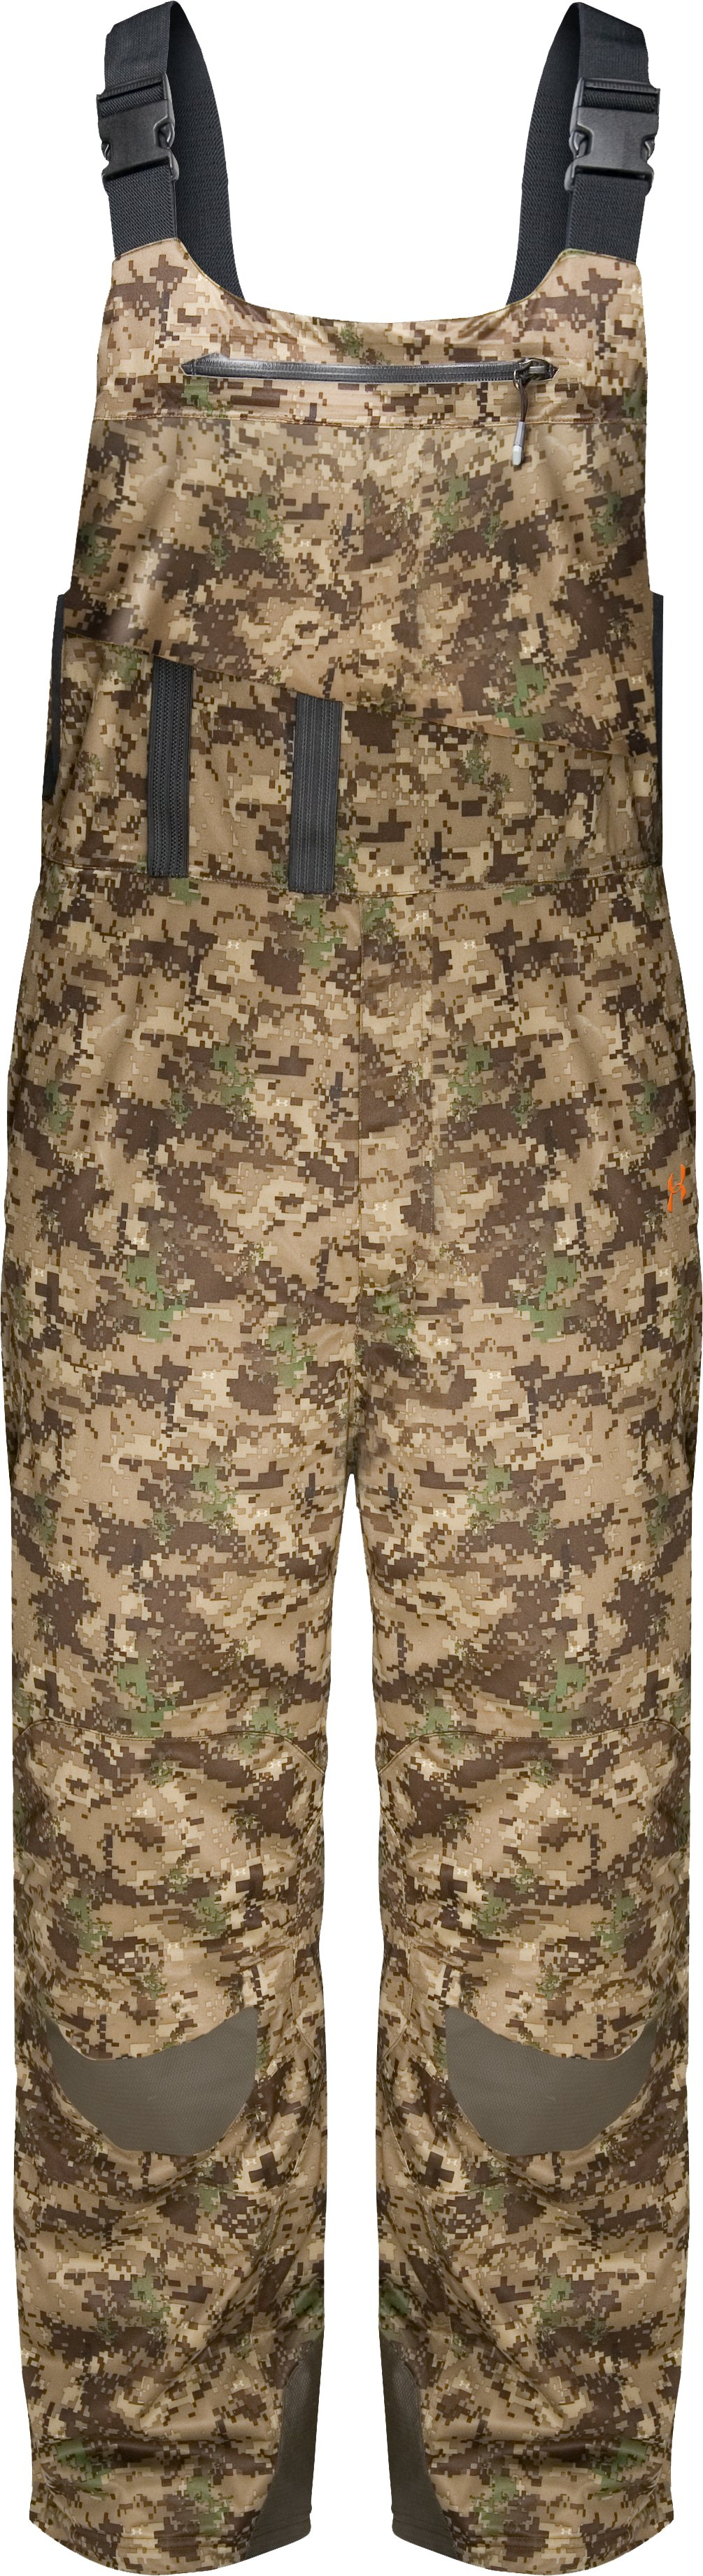 Men's ArmourStealth™ Camo Extreme Cold Bib, UA Digital, zoomed image